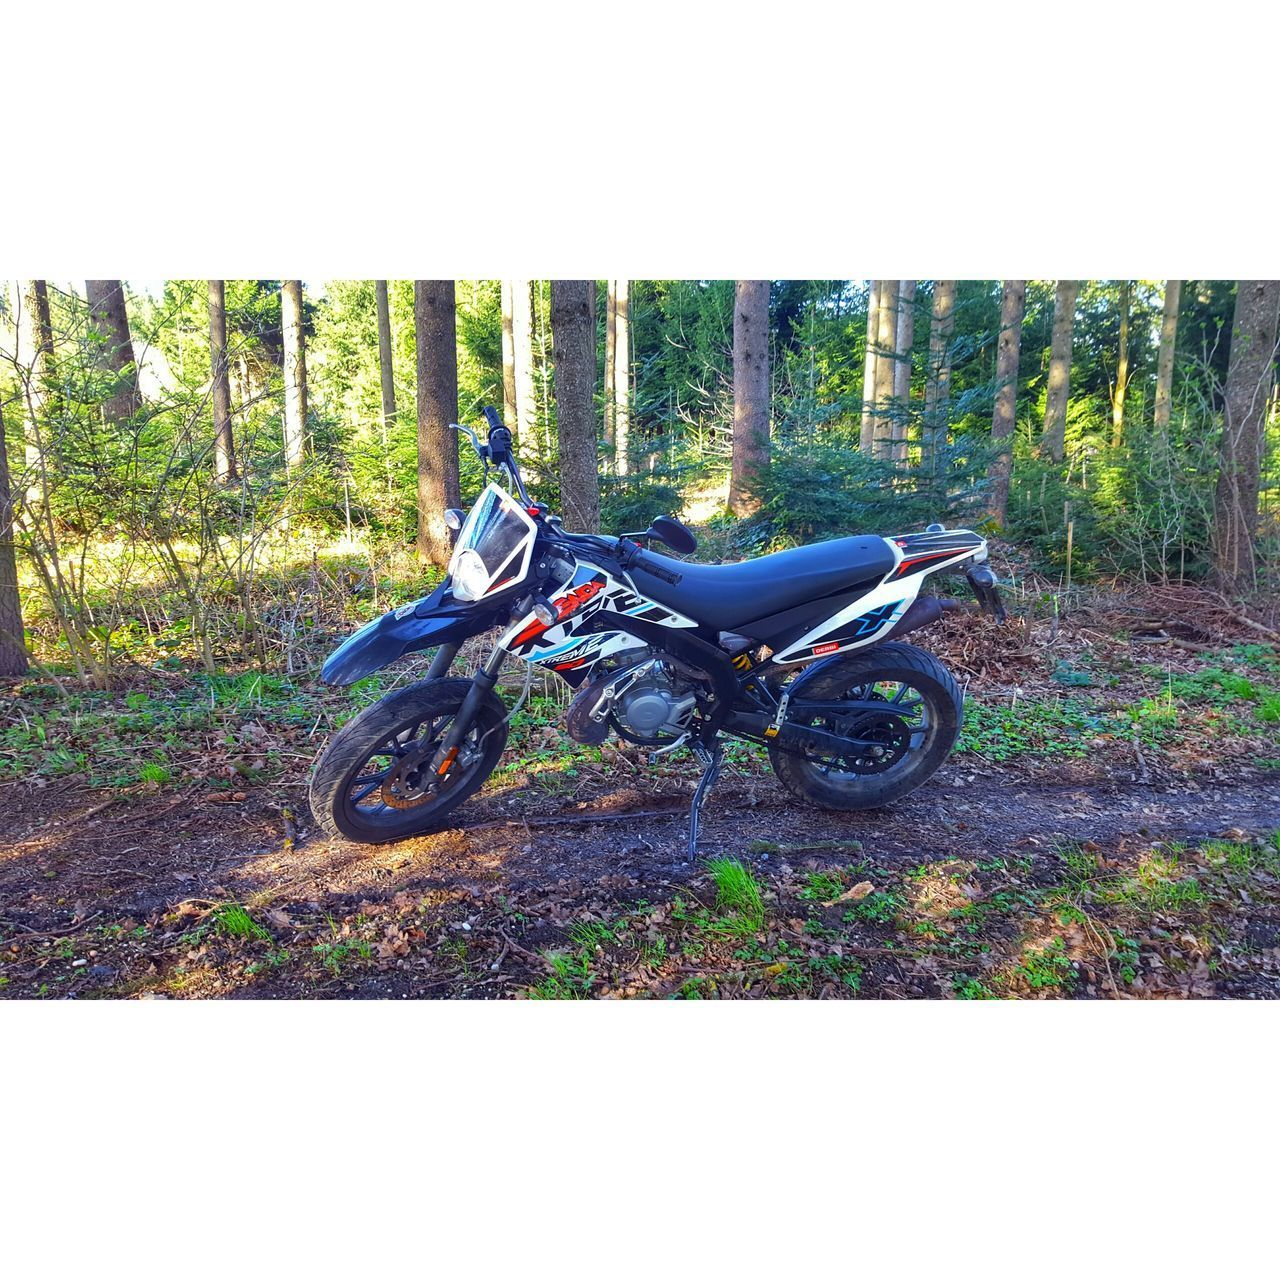 motorcycle, day, transportation, crash helmet, outdoors, land vehicle, helmet, men, real people, motocross, tree, one person, nature, people